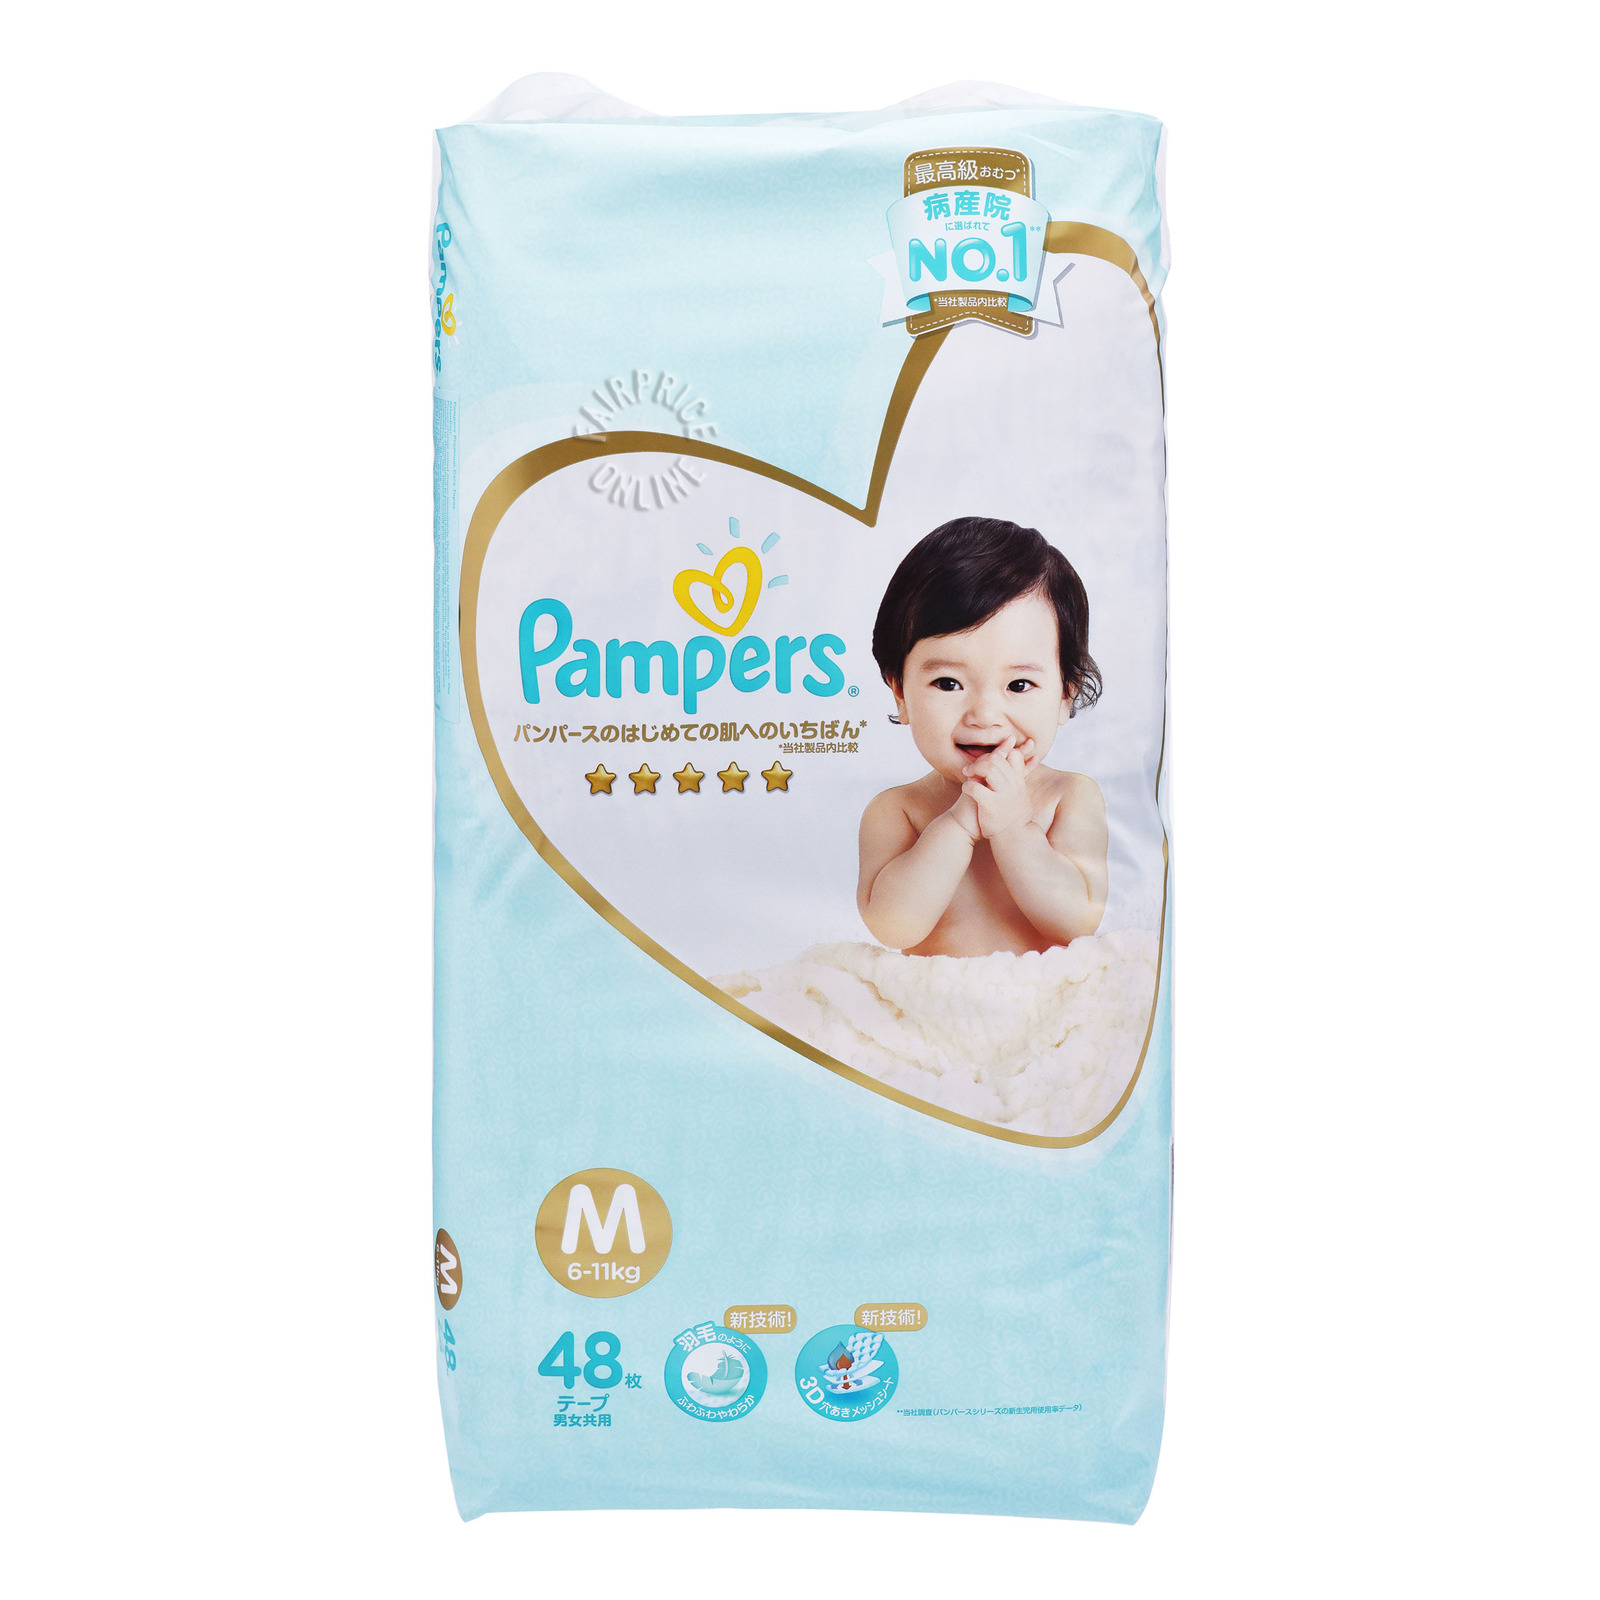 Pampers Premium Care Tape Diapers - M (6-11kg)